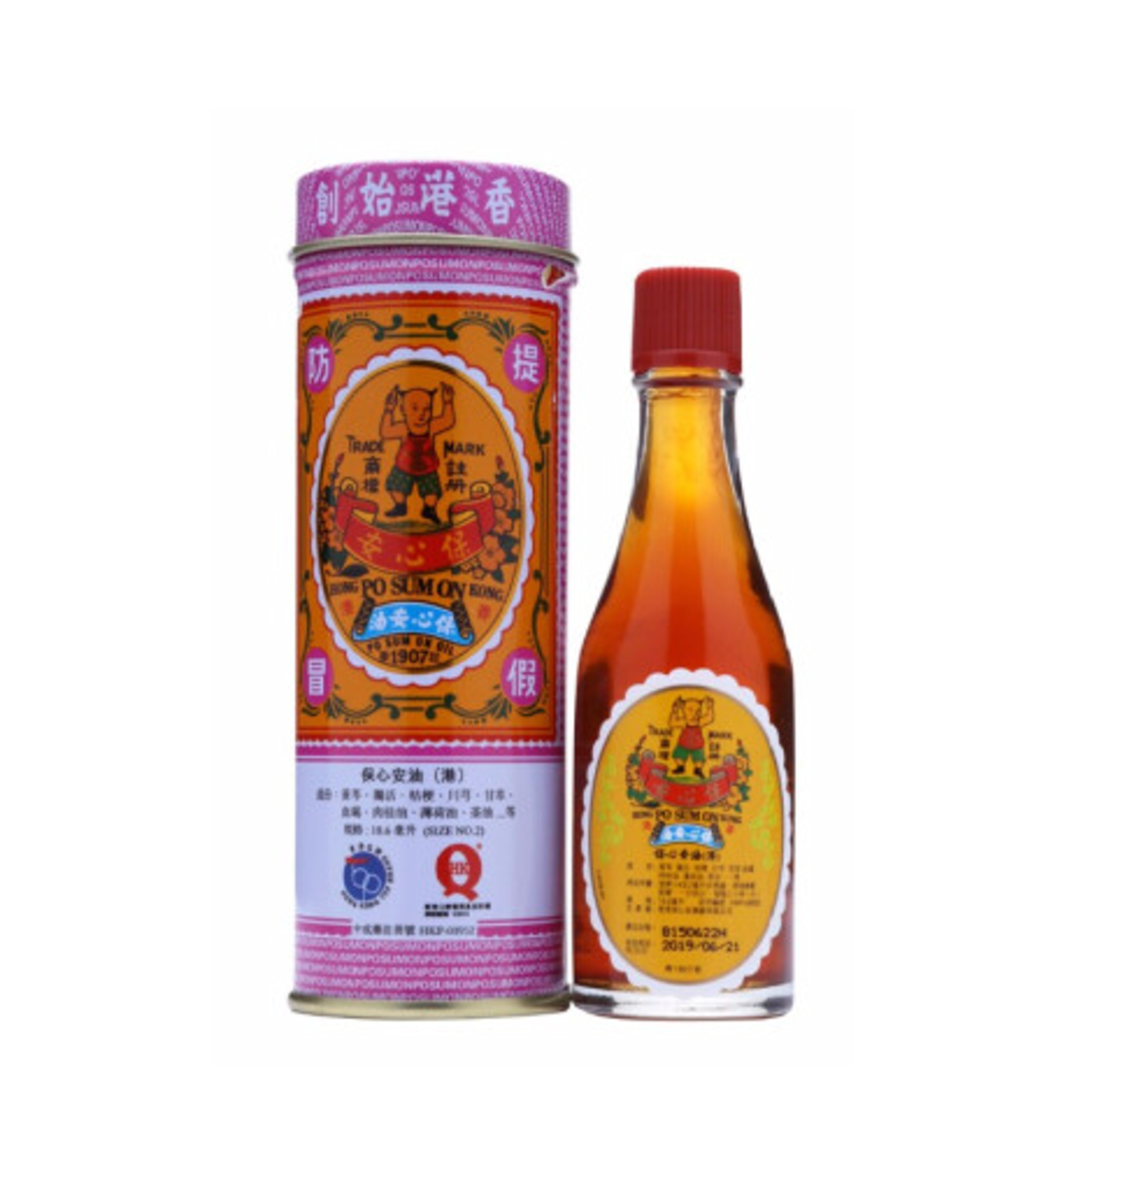 Po Sum On Medicated Oil 30ml